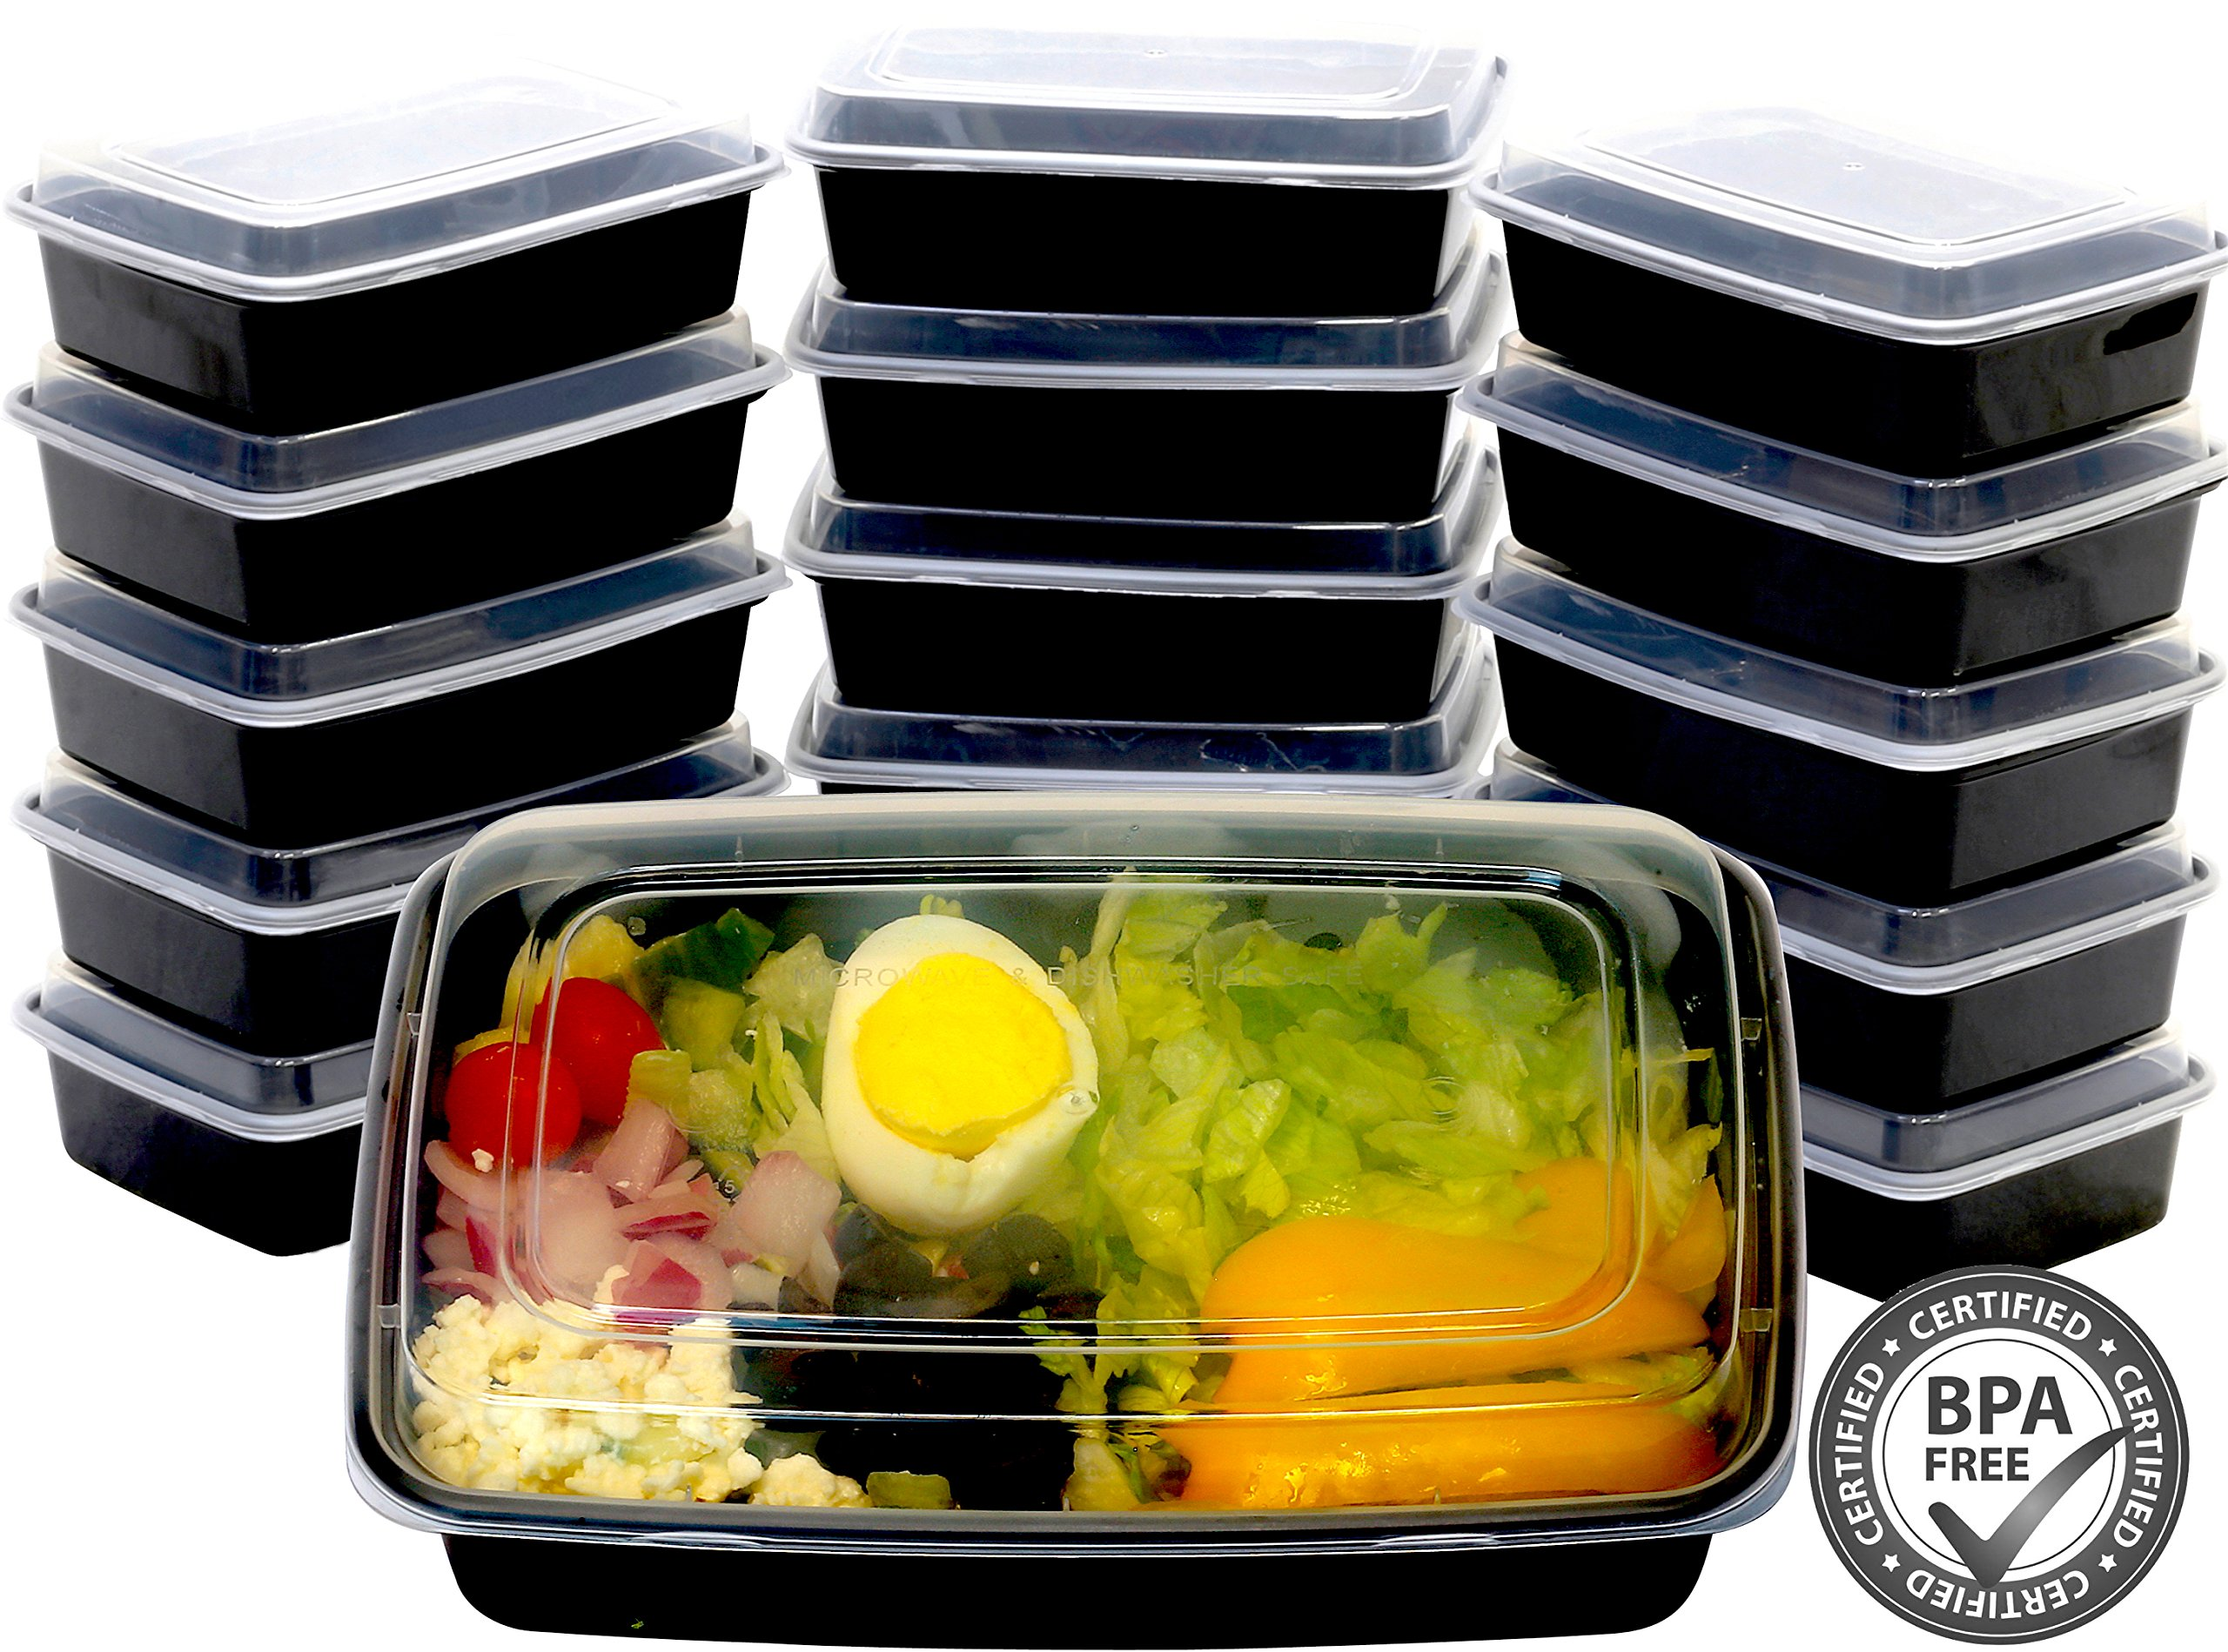 16 Pack - SimpleHouseware 1 Compartment Food Grade Meal Prep Storage Container Boxes, 28 Ounces